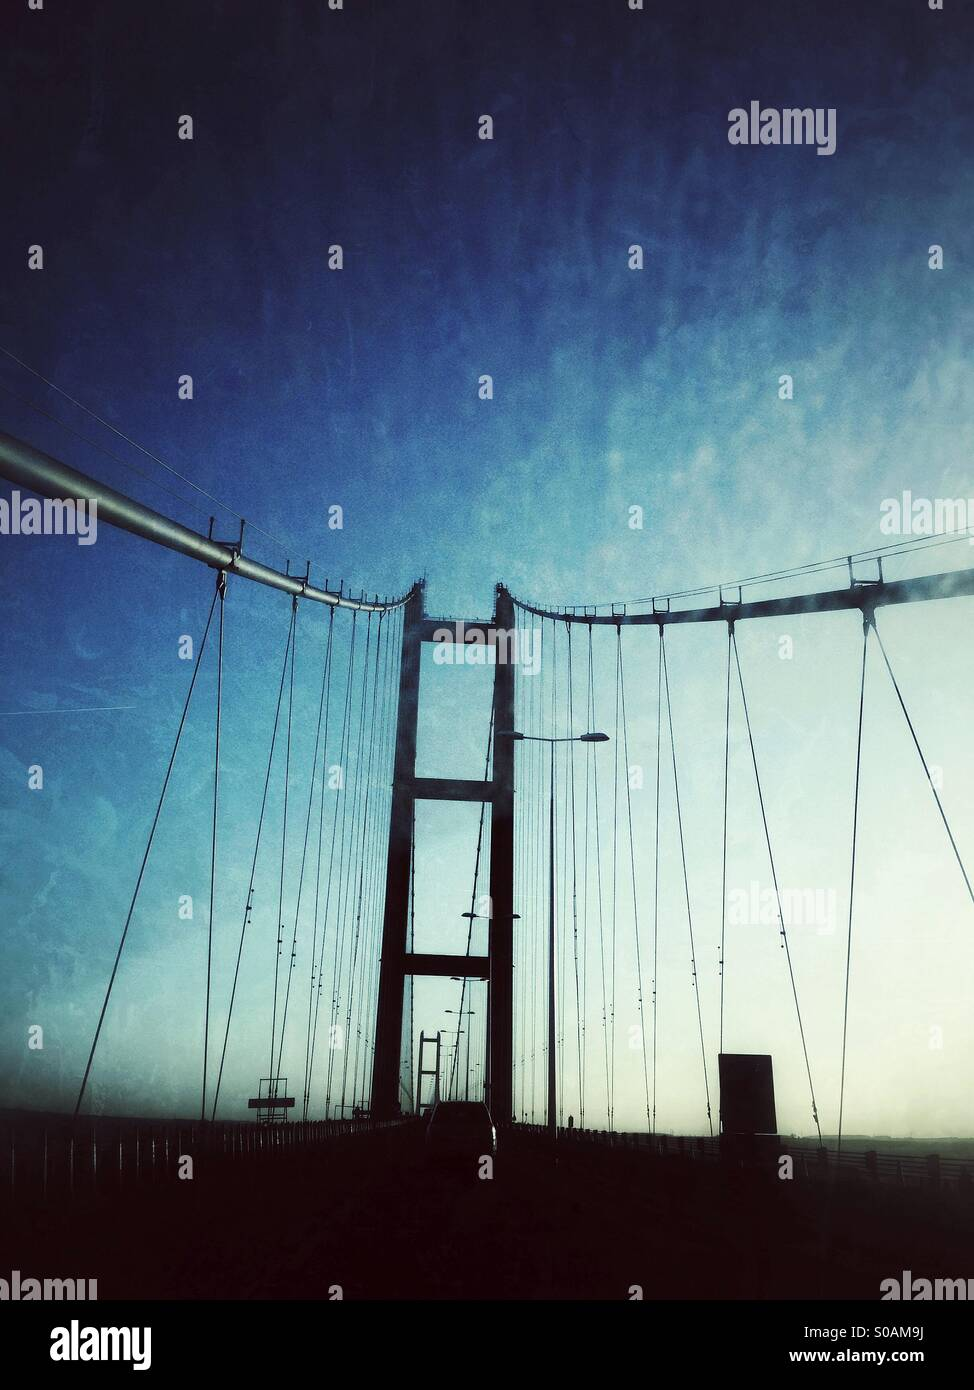 Suspension bridge at twilight - Stock Image